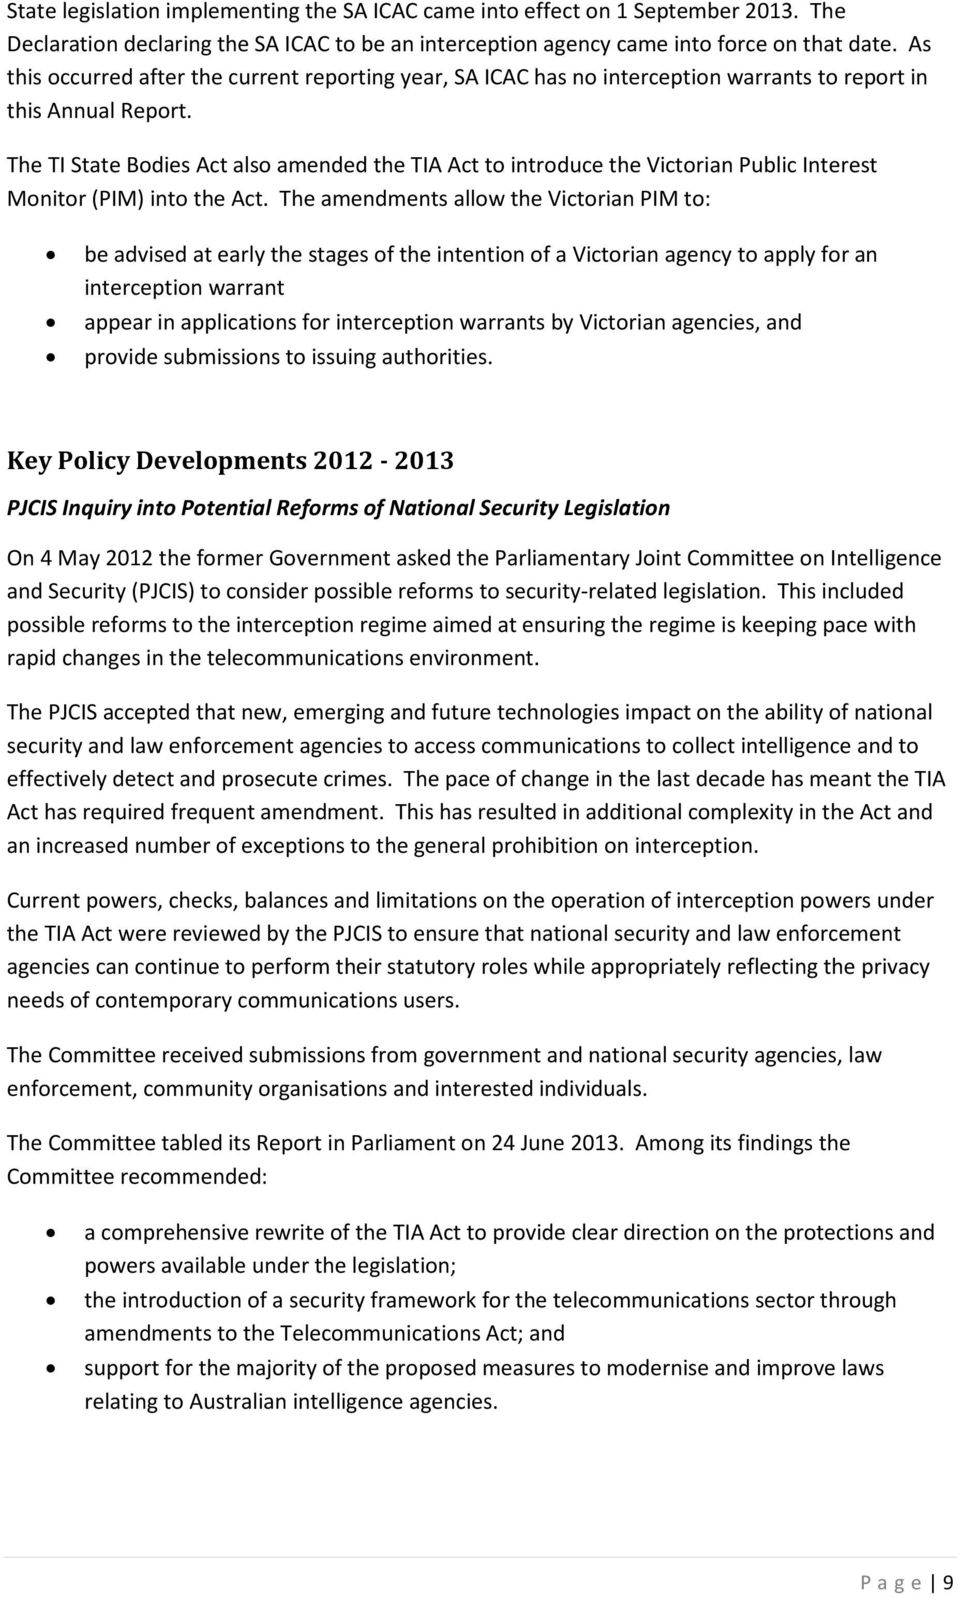 The TI State Bodies Act also amended the TIA Act to introduce the Victorian Public Interest Monitor (PIM) into the Act.